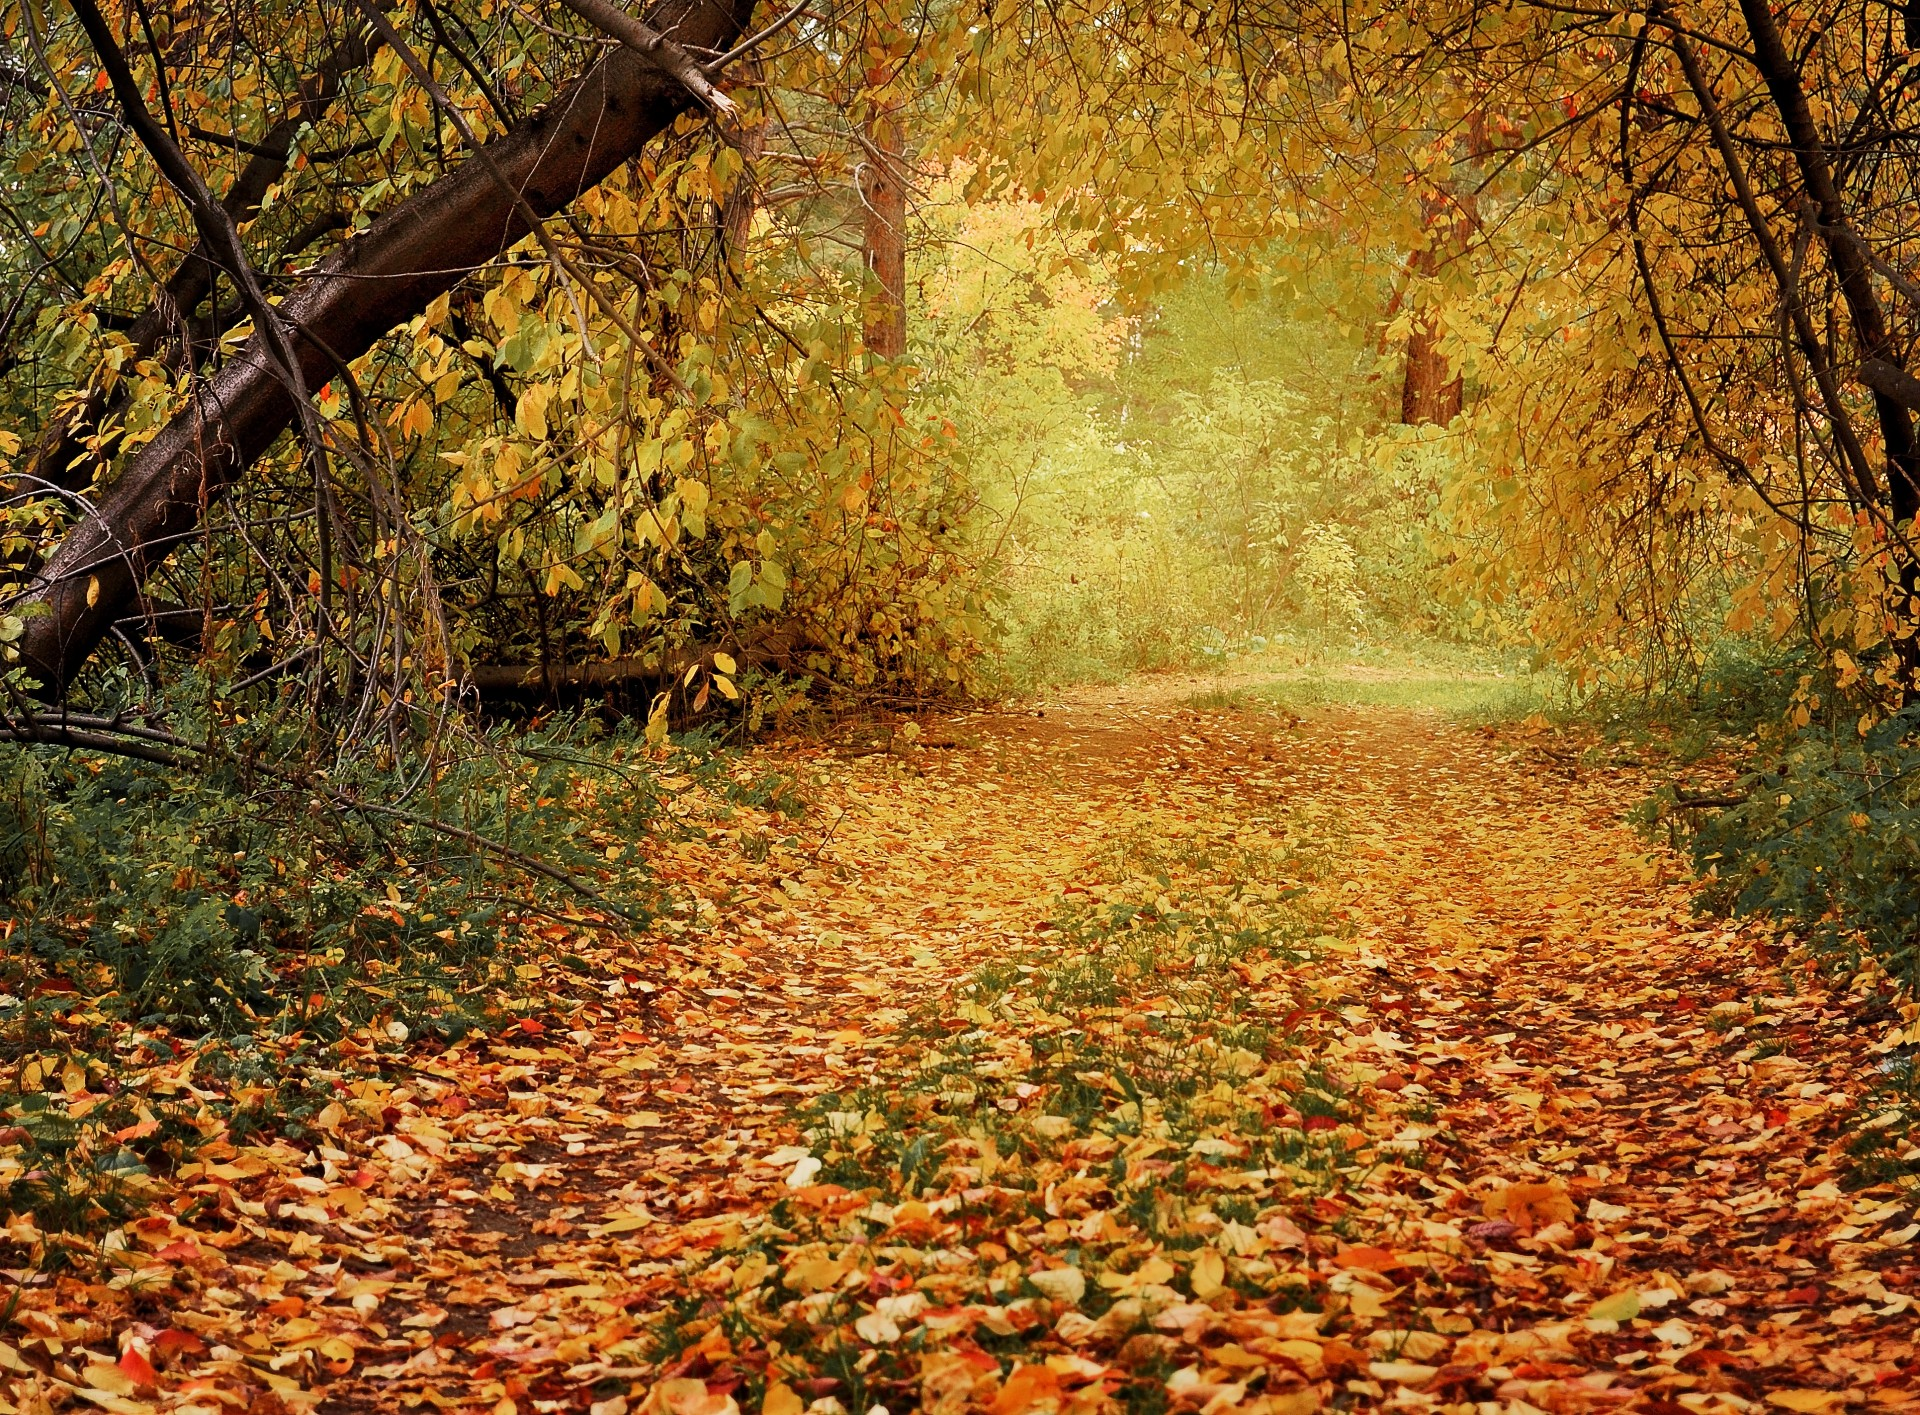 Late Fall Wallpaper Autumn Path In The Woods Free Stock Photo Public Domain